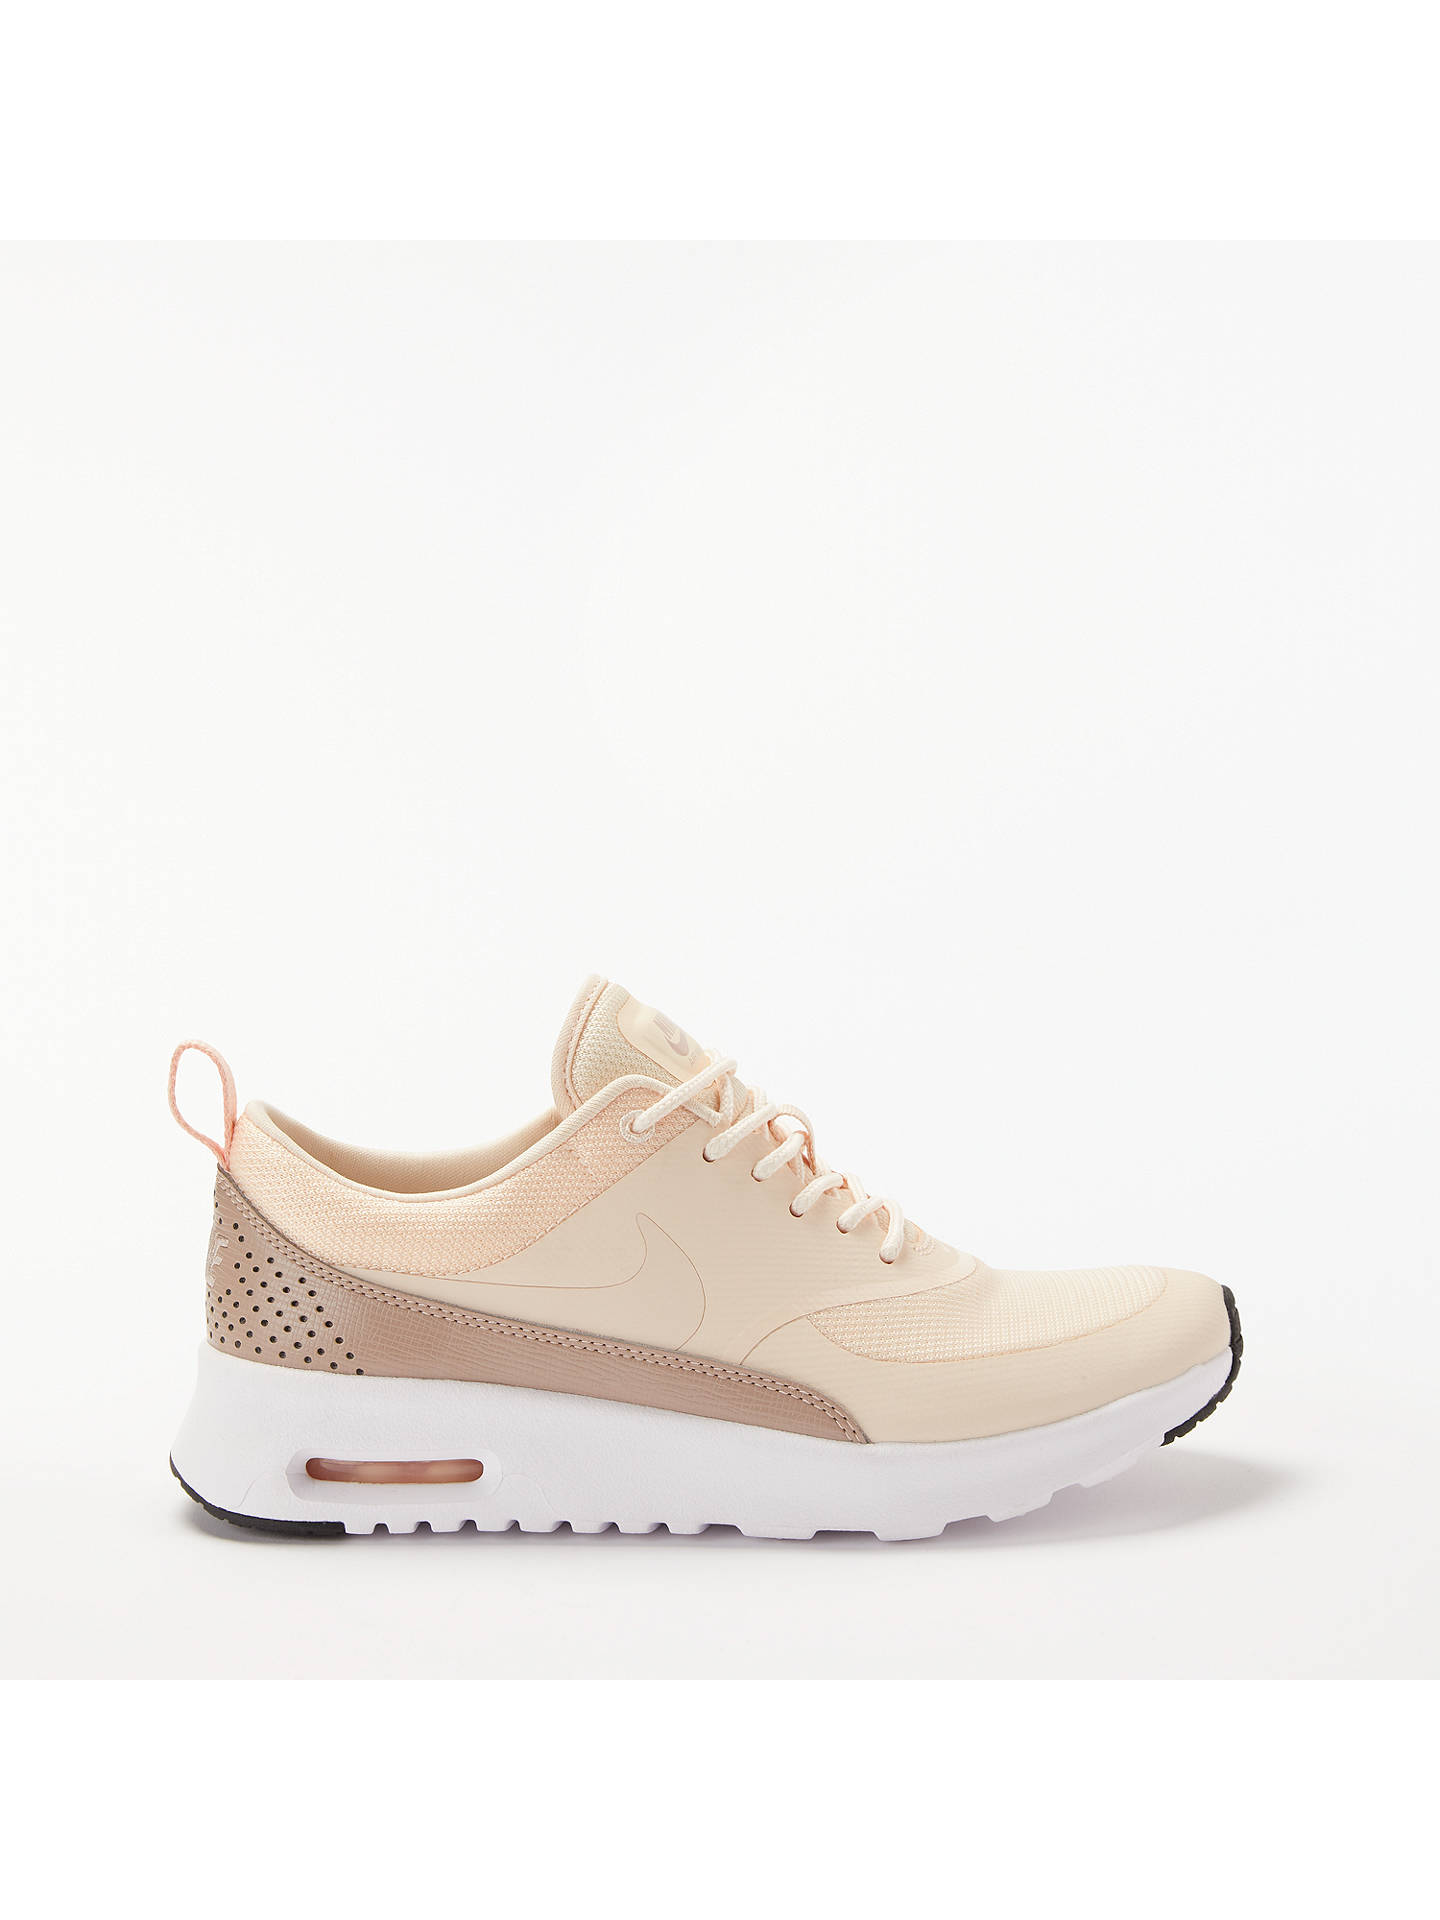 finest selection b0f7f 86340 Buy Nike Air Max Thea Women s Trainers, Guava Ice, 4 Online at johnlewis.